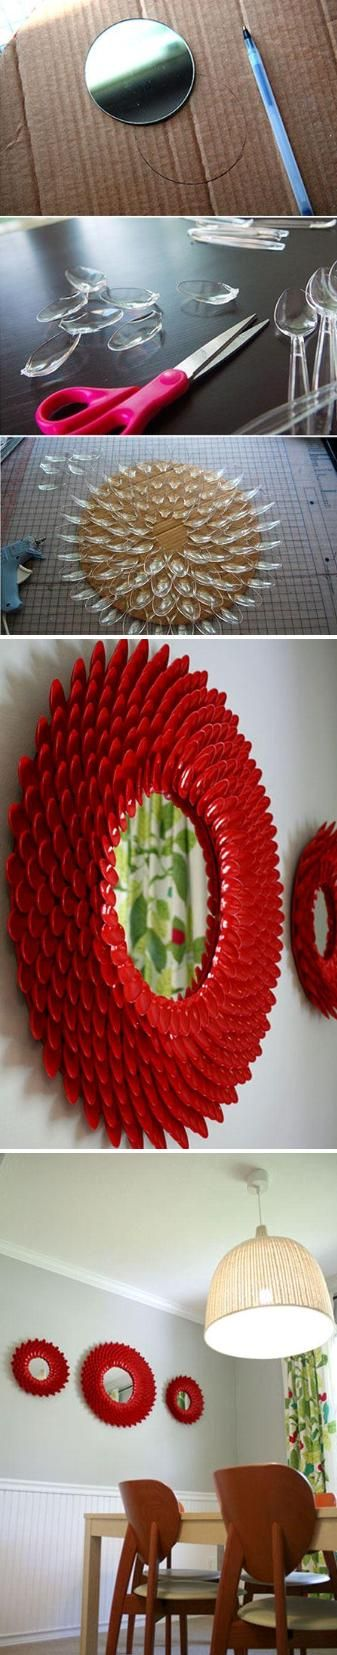 Make a Mirror from Plastic Spoon - Make a Chrysanthemum Mirror from Plastic Spoon